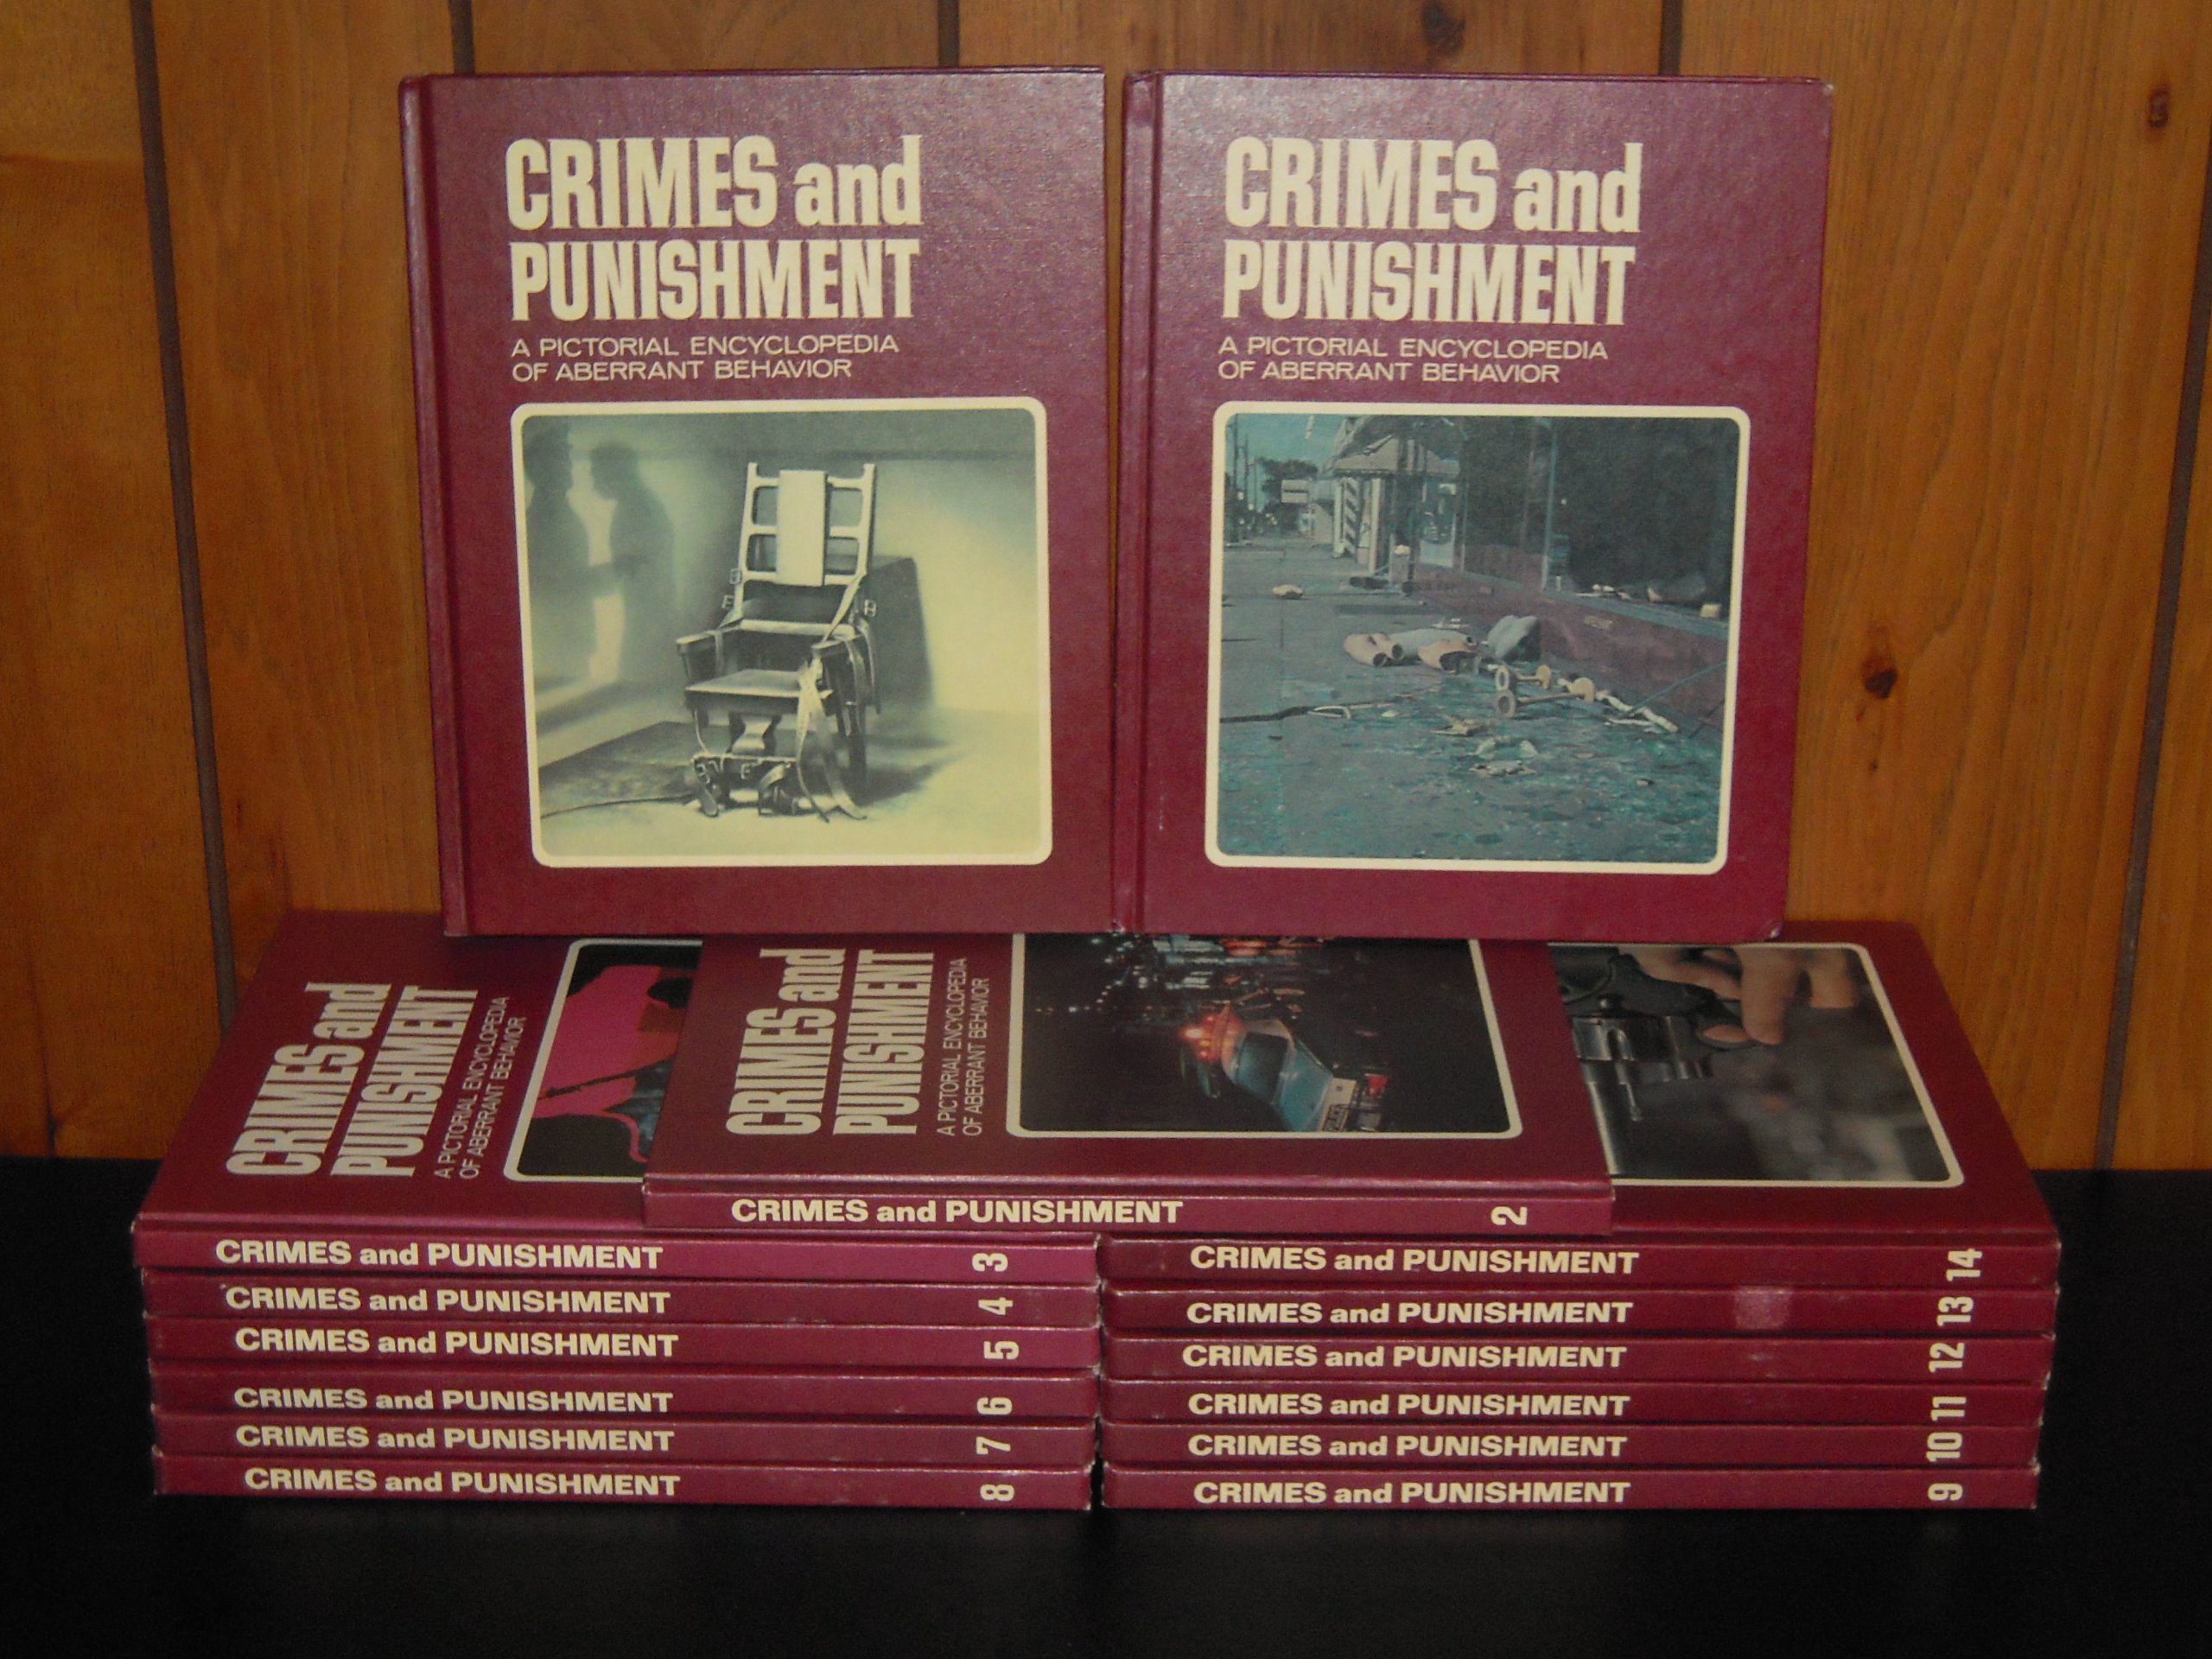 Crime and Punishment: a Pictorial Encyclopedia of Aberrant Behavior (A Complete Set of 20 Volumes)